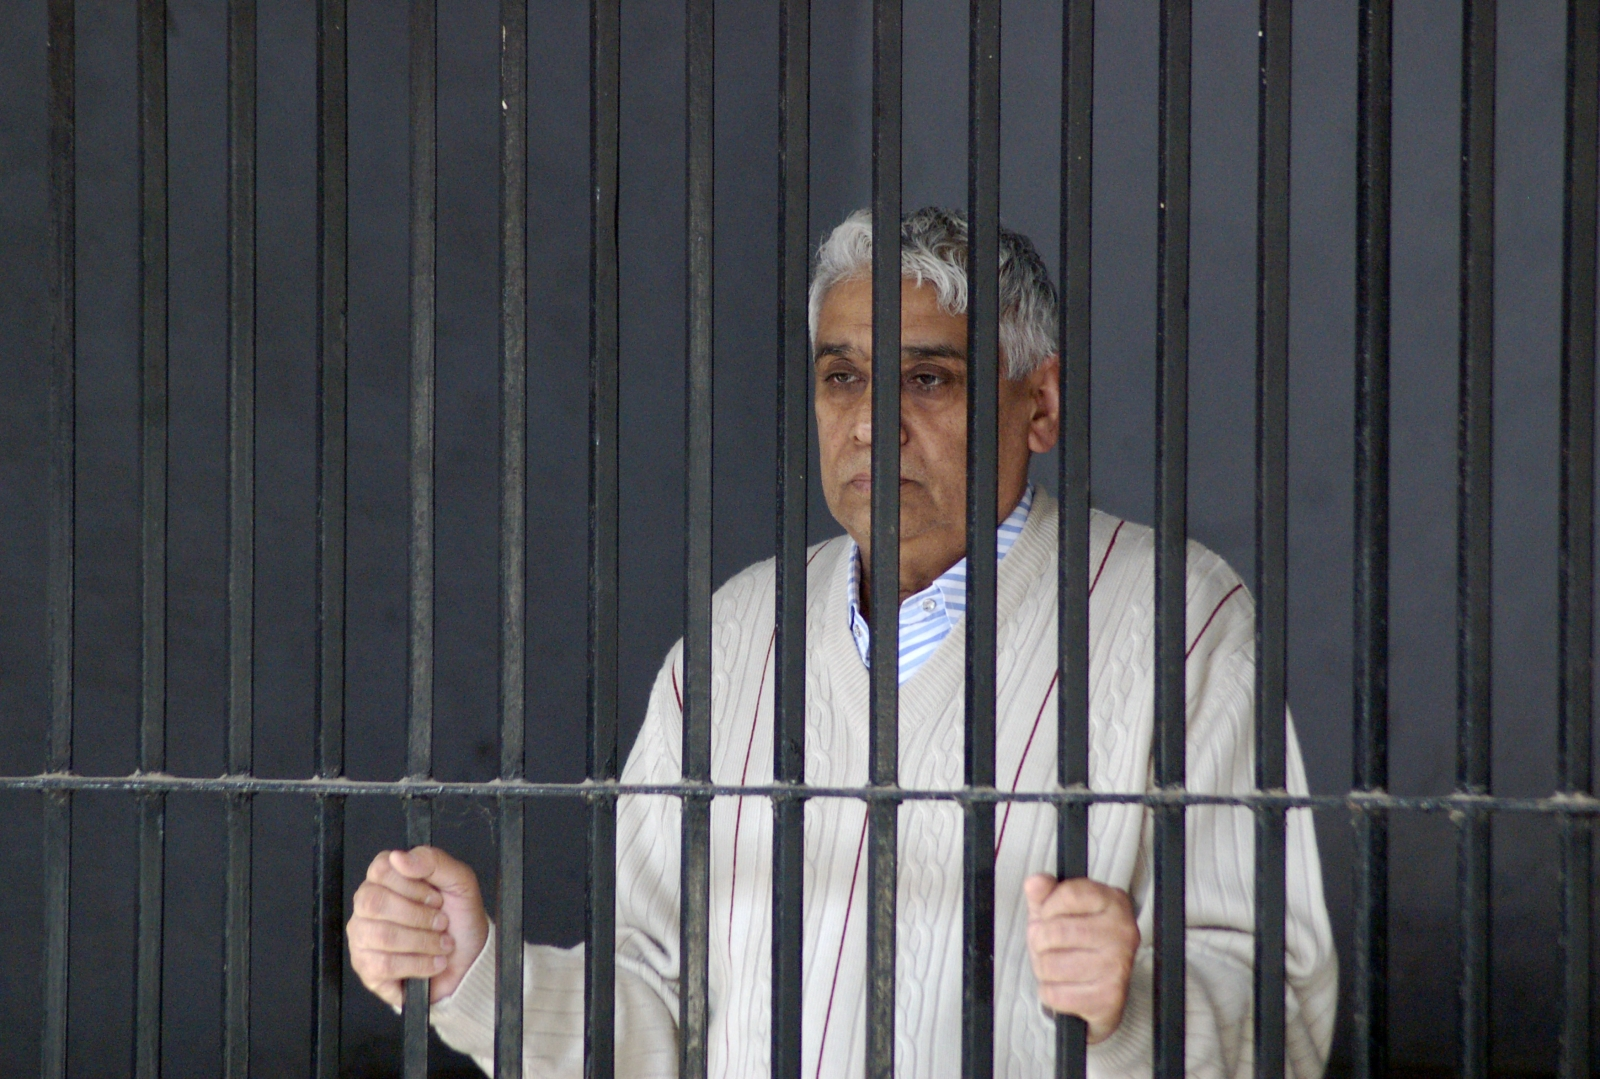 Satguru Rampalji Maharaj in police custody, after being arrested in relation with a 2006 murder case. (Reuters)